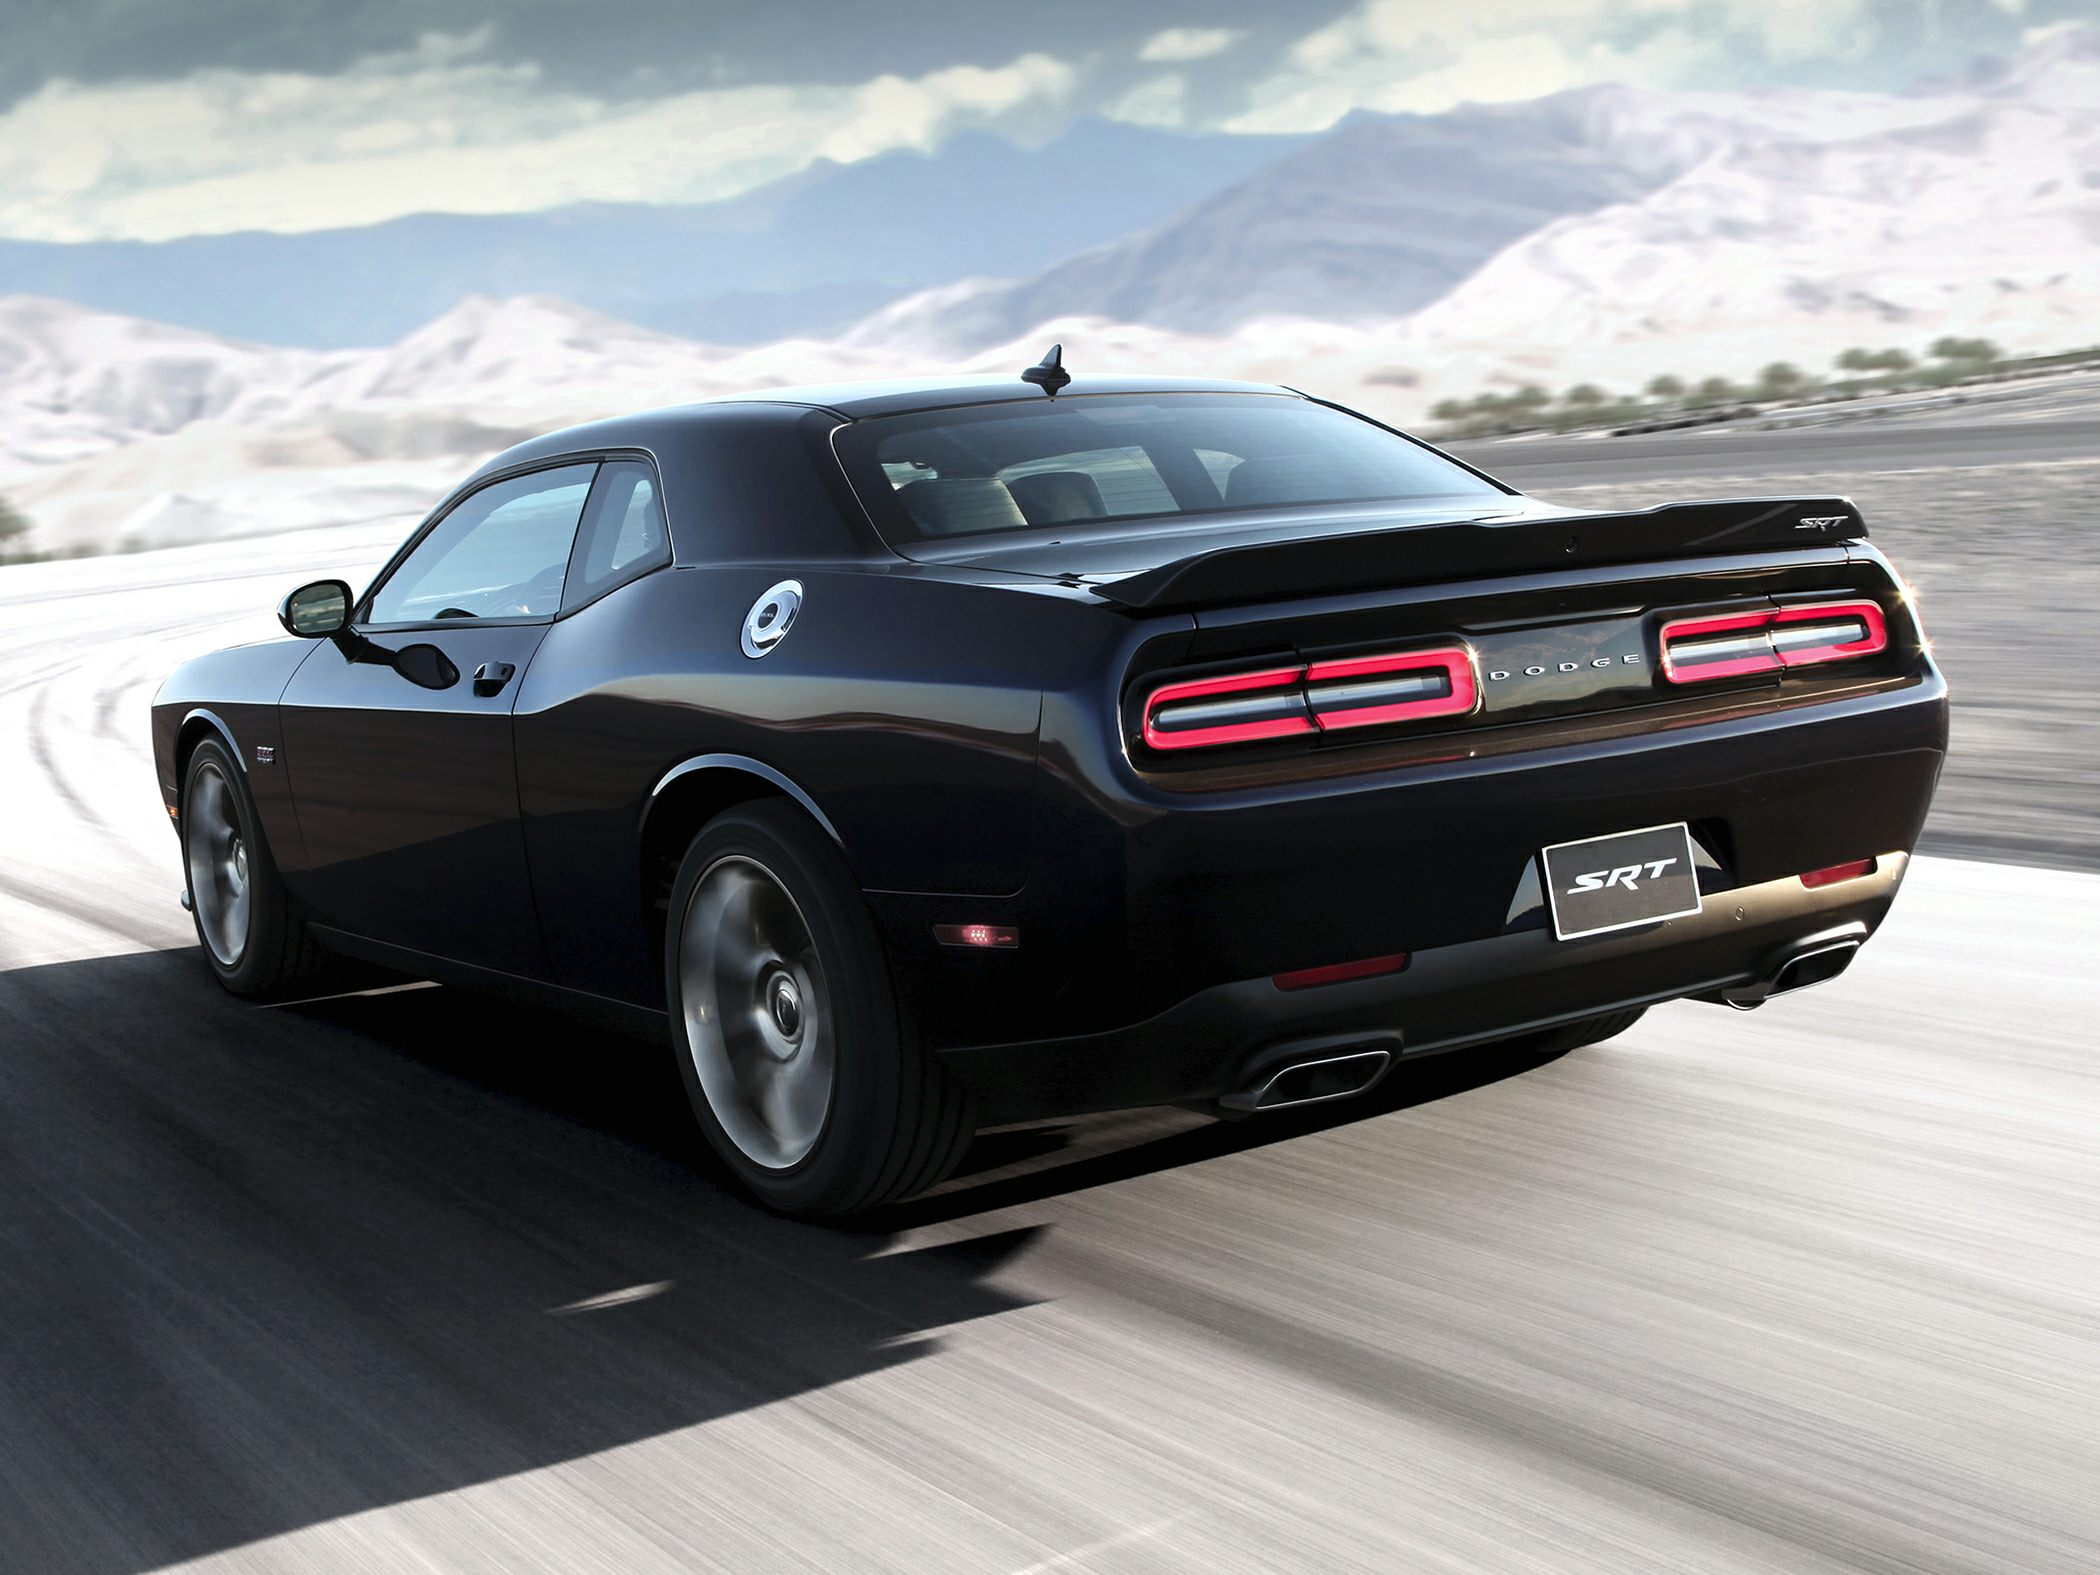 Dodge Challenger Rear Quarter